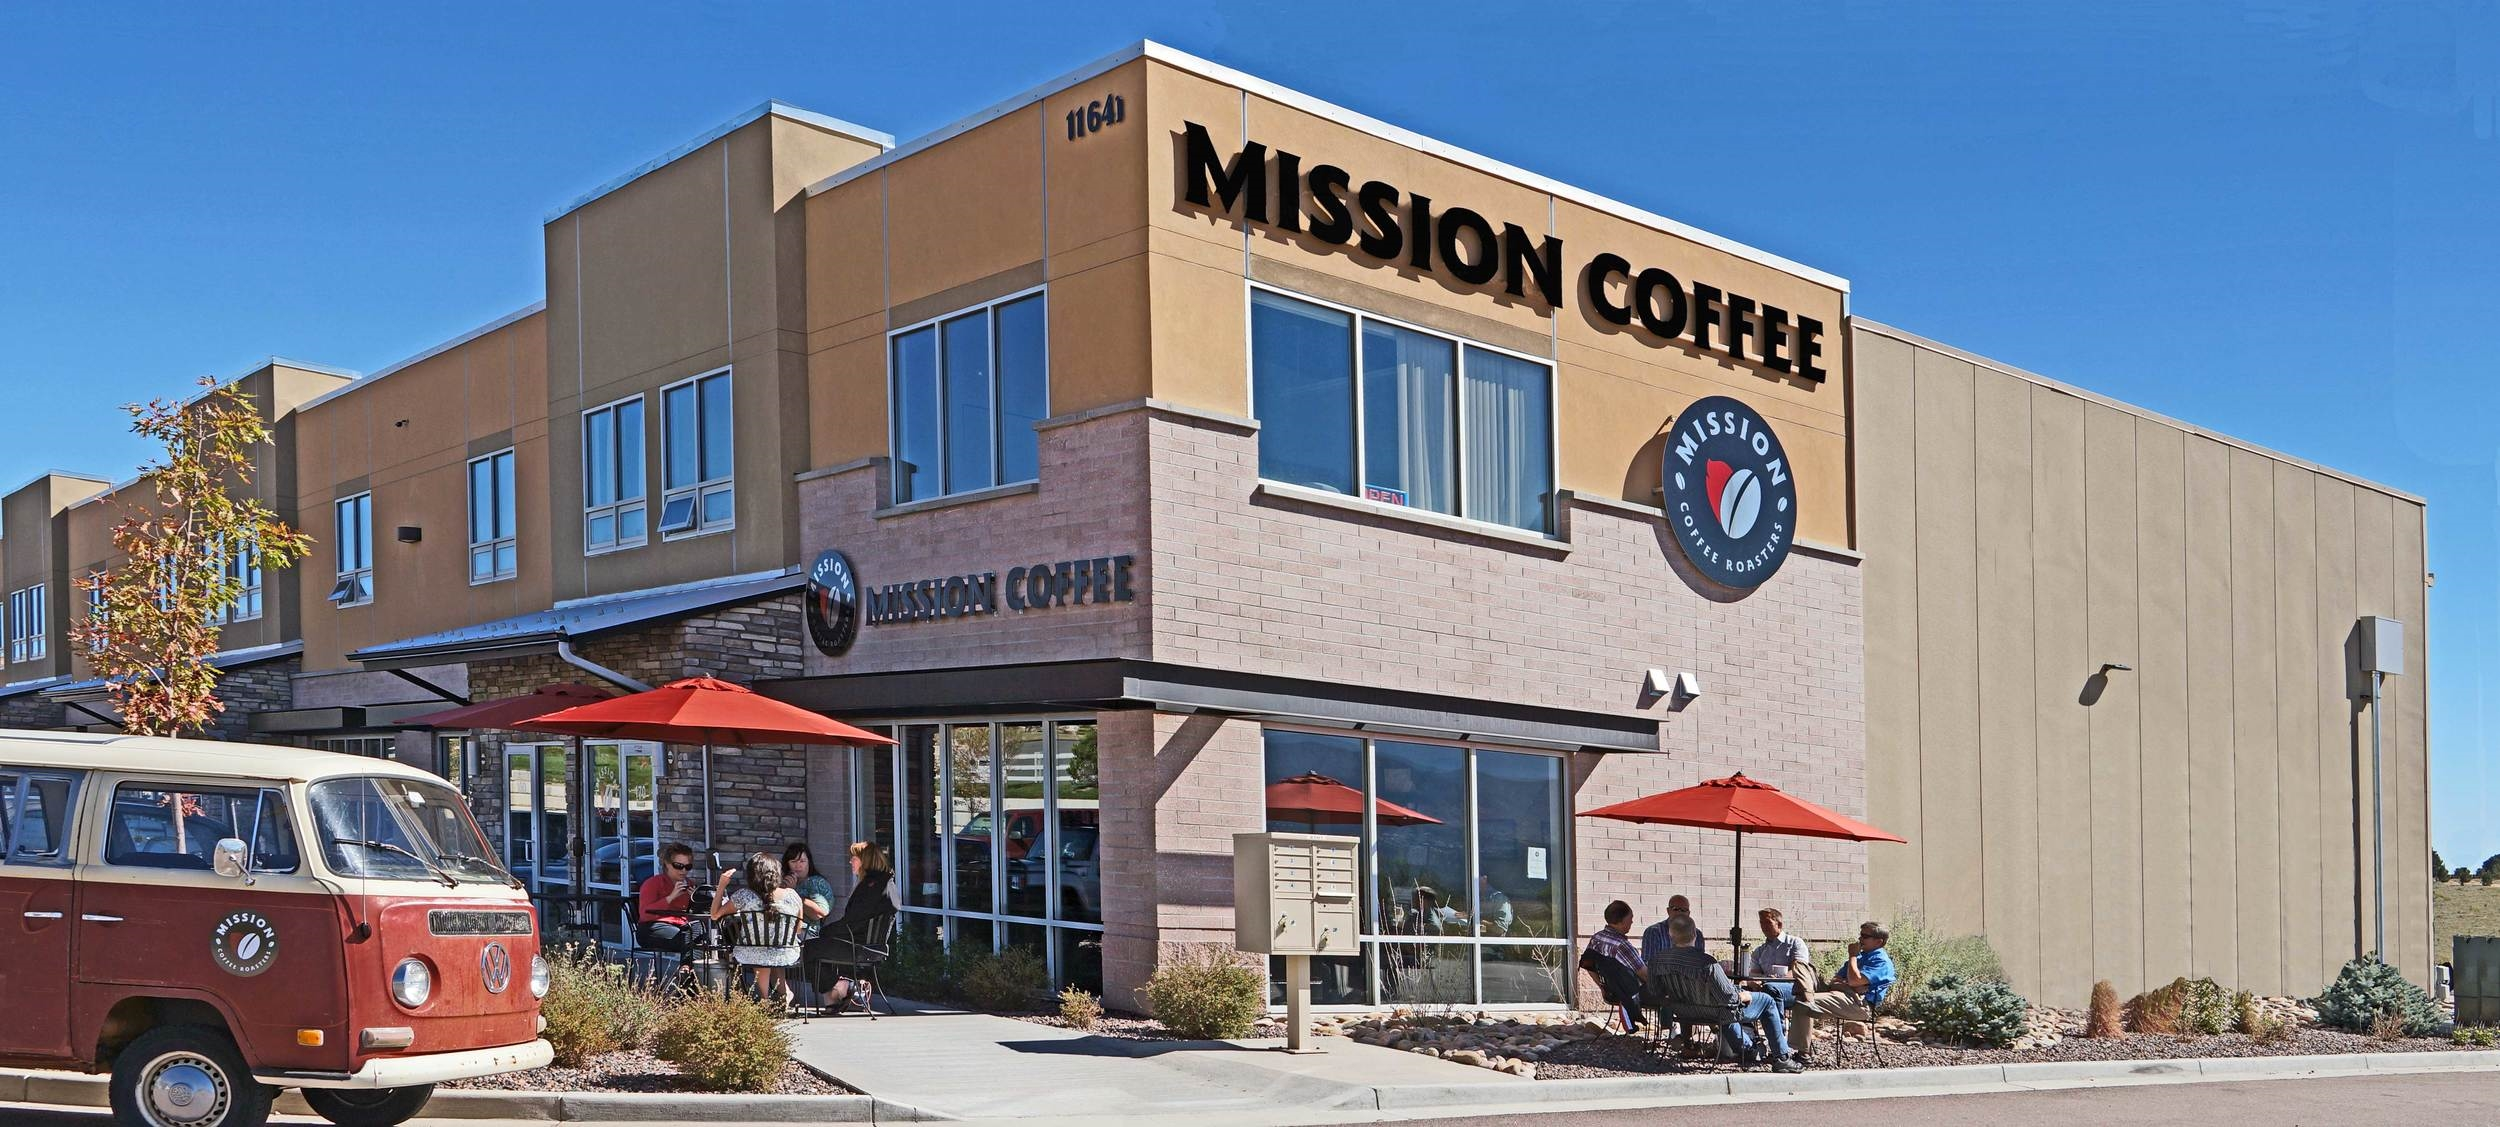 Mission Coffee Colorado Springs